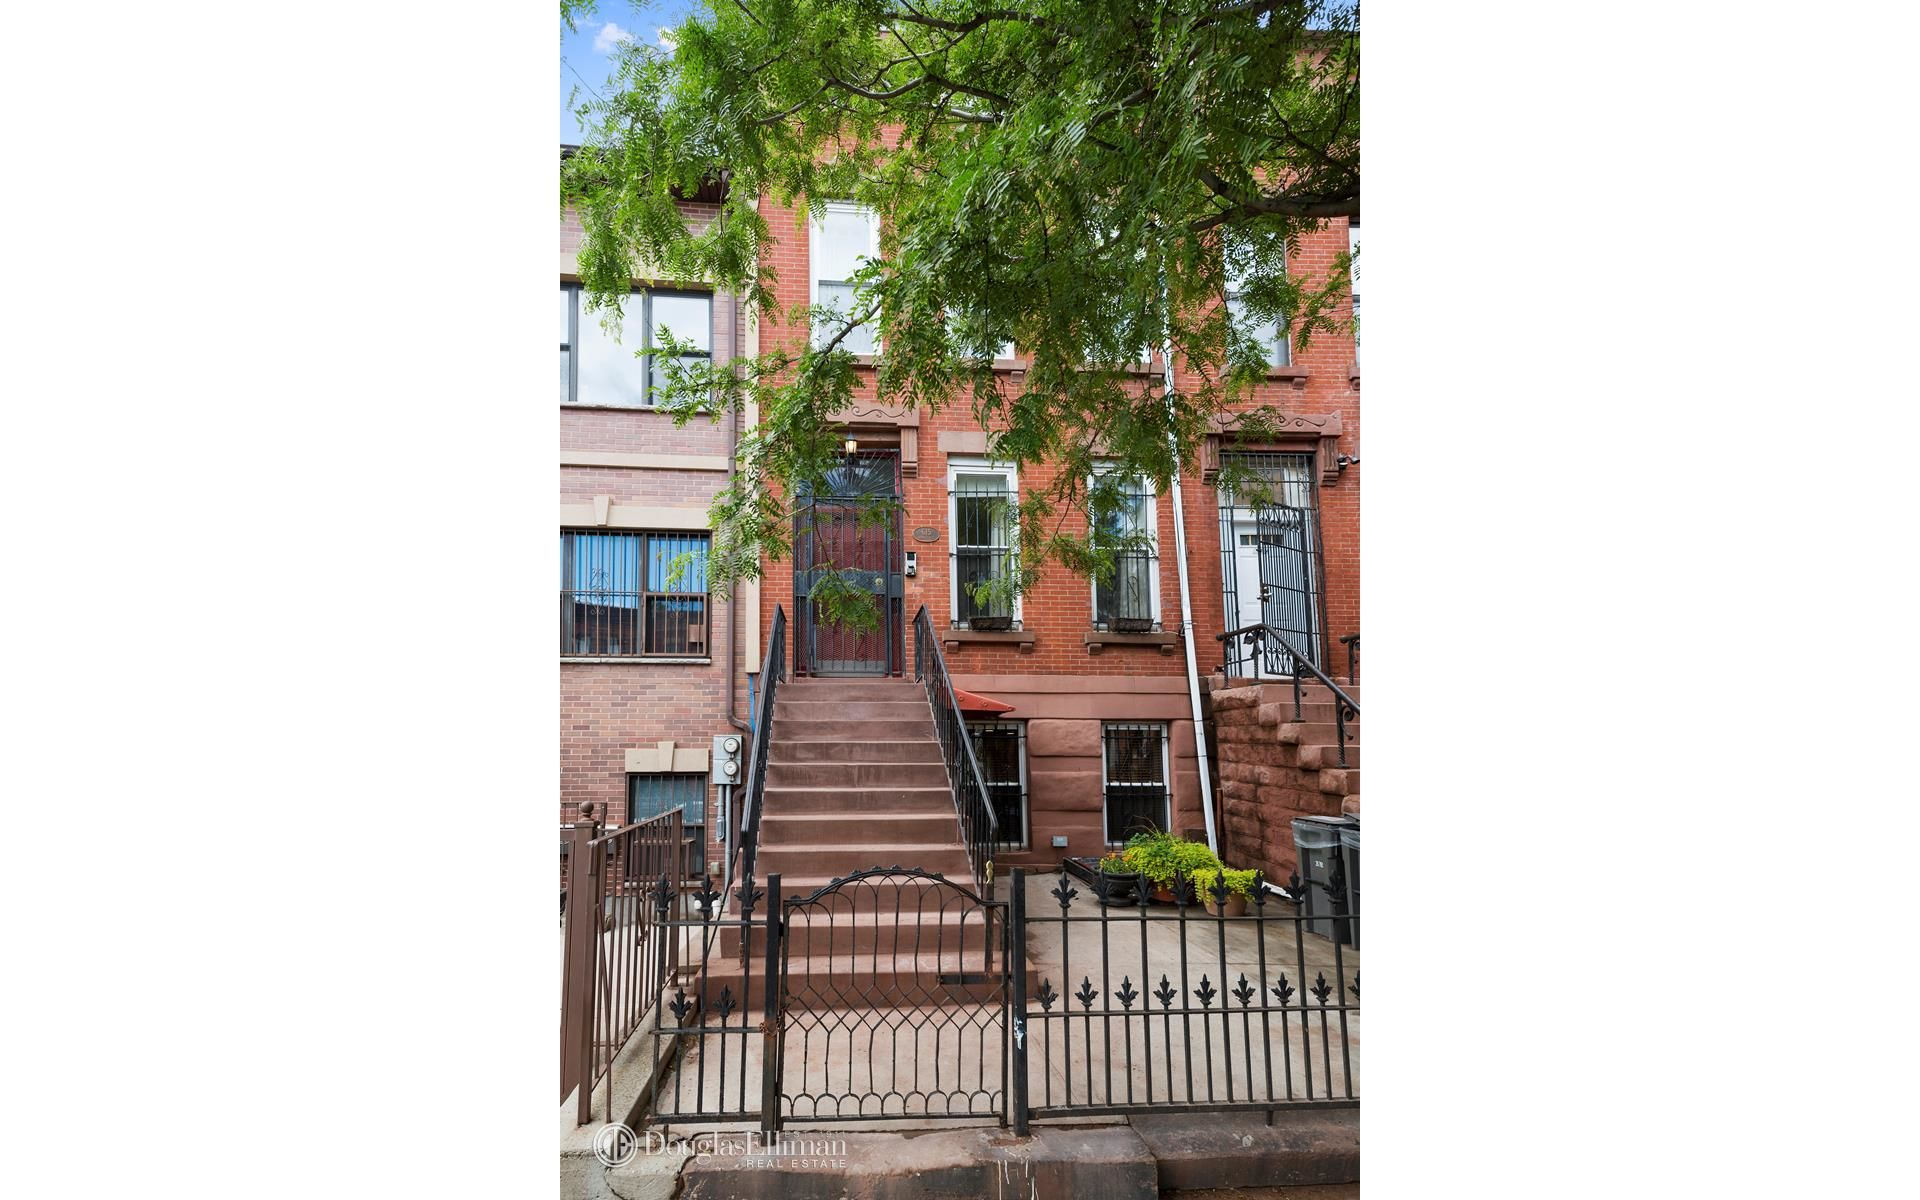 615 Halsey St Photo 1 - ELLIMAN-2771736